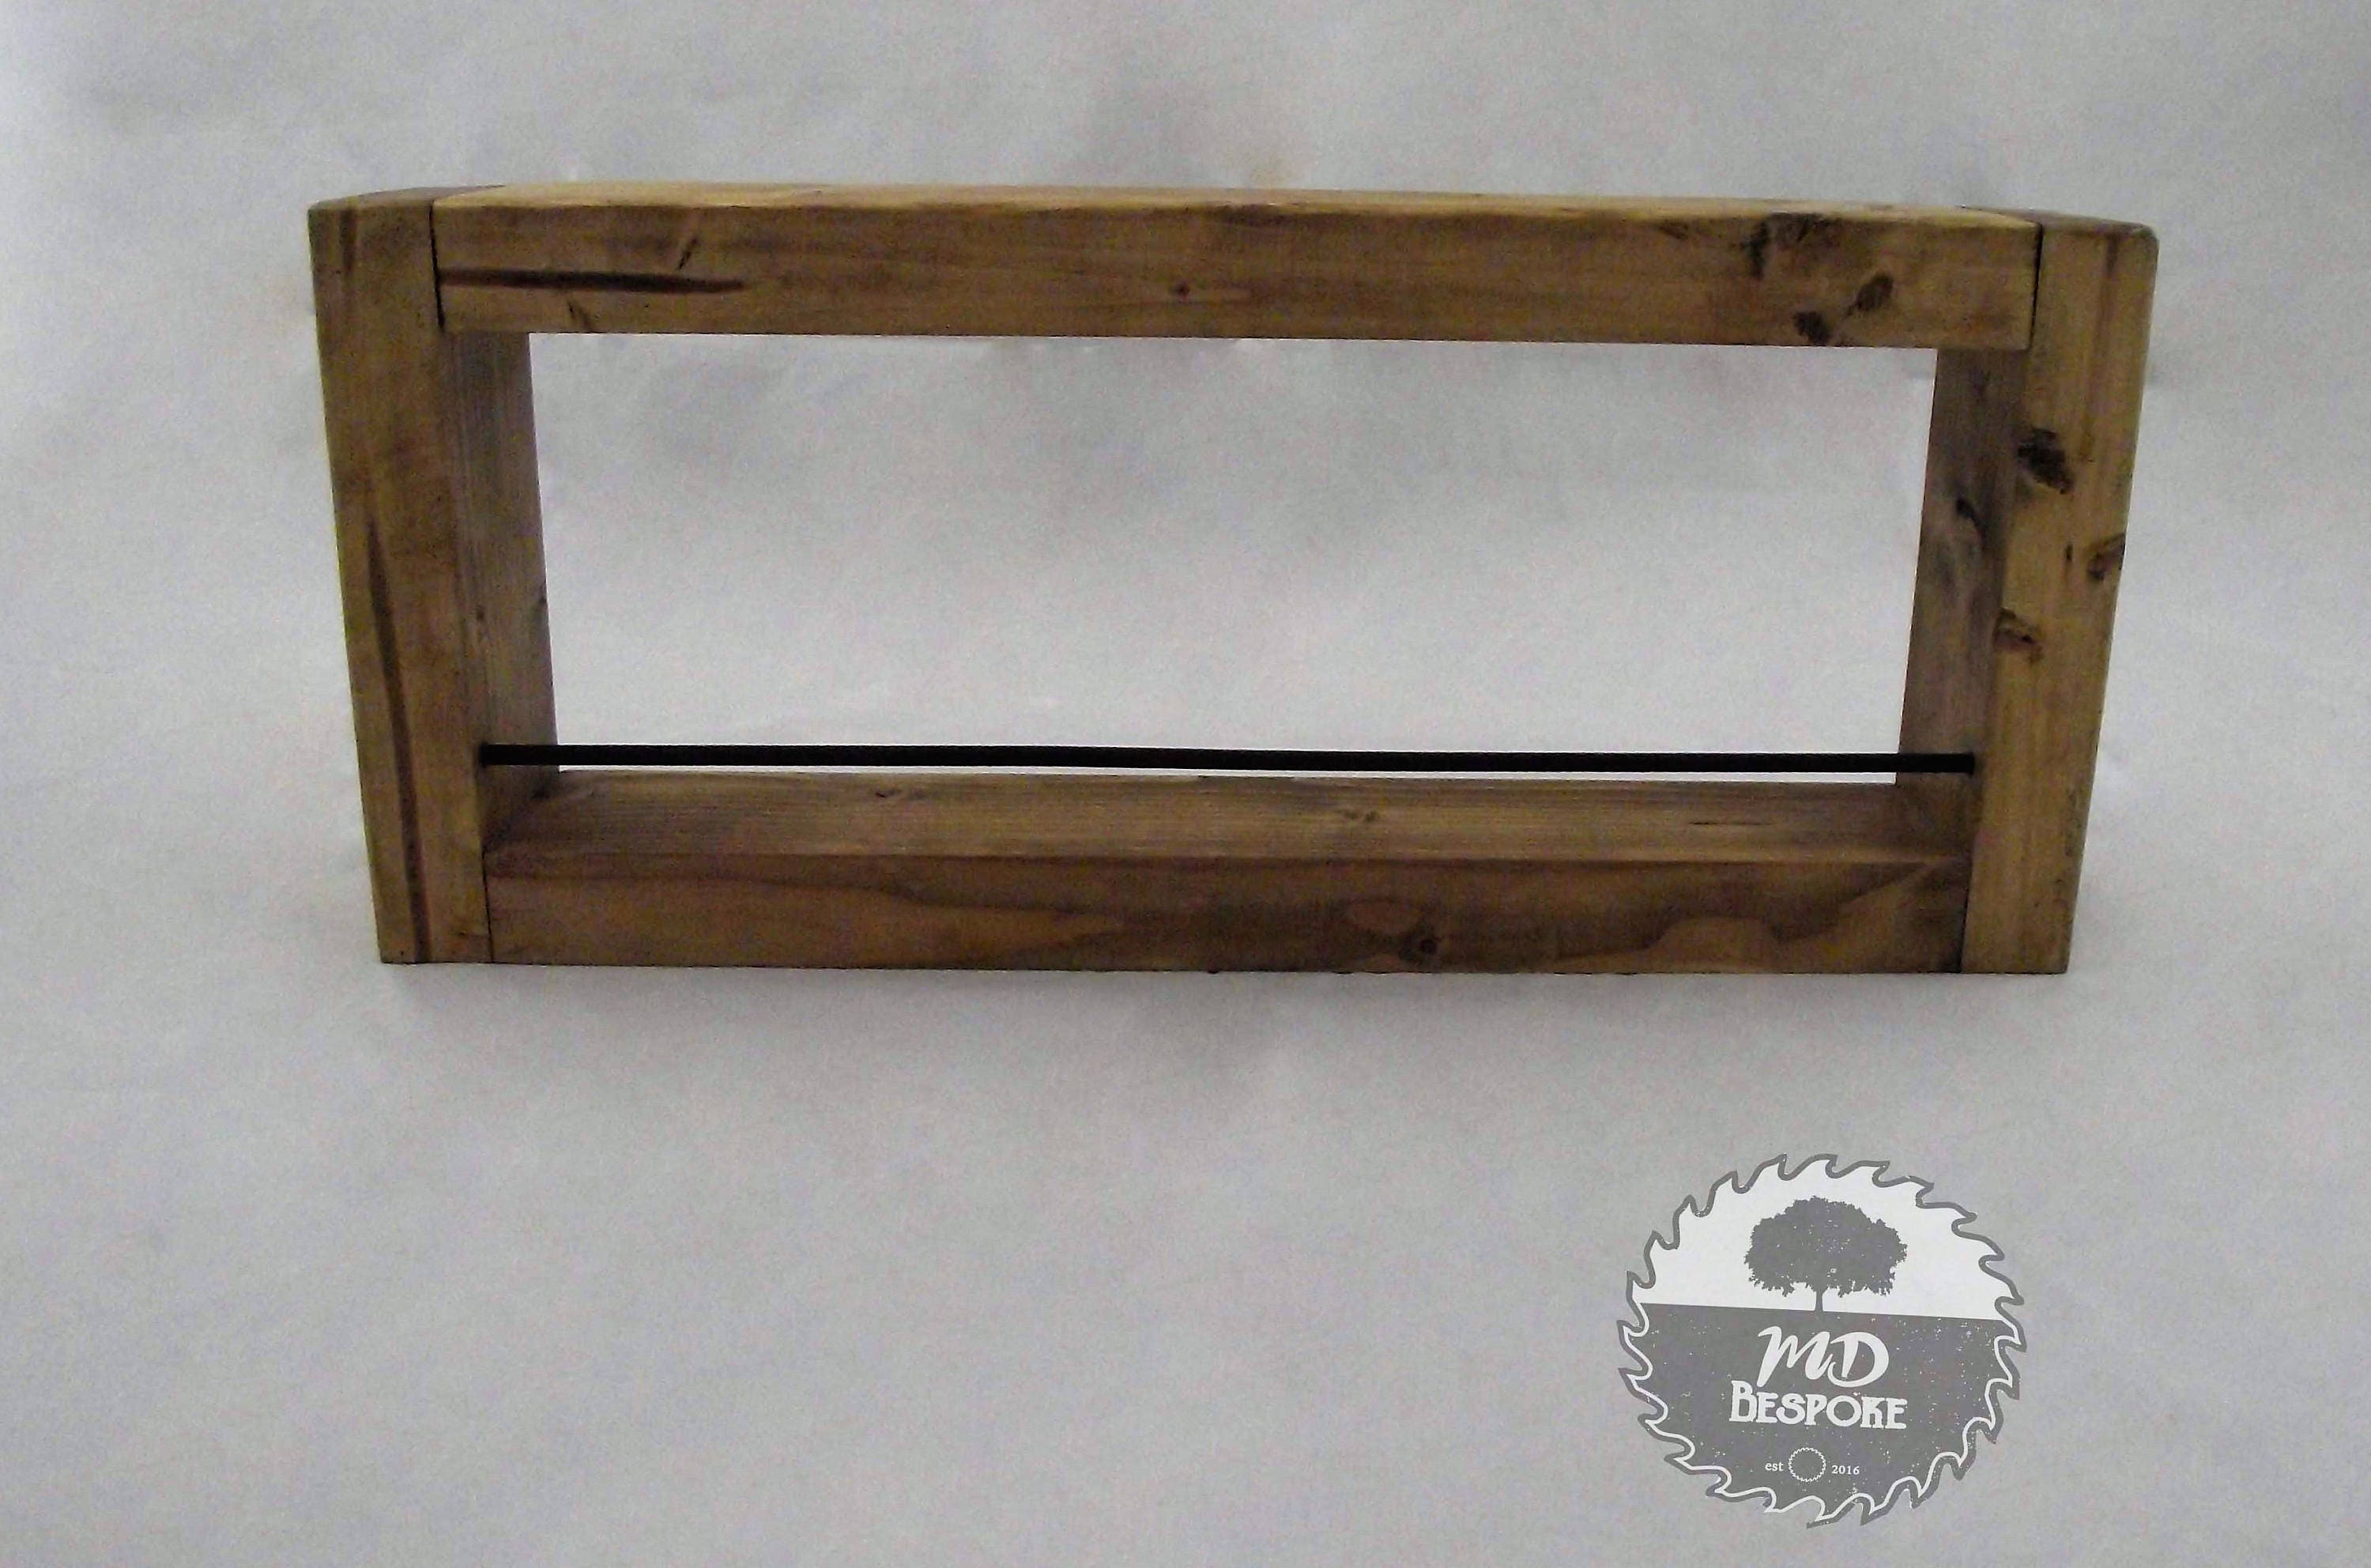 Kitchen Spice Rack Wooden Spice Rack Kitchen Storage Shelf Holder Rustic